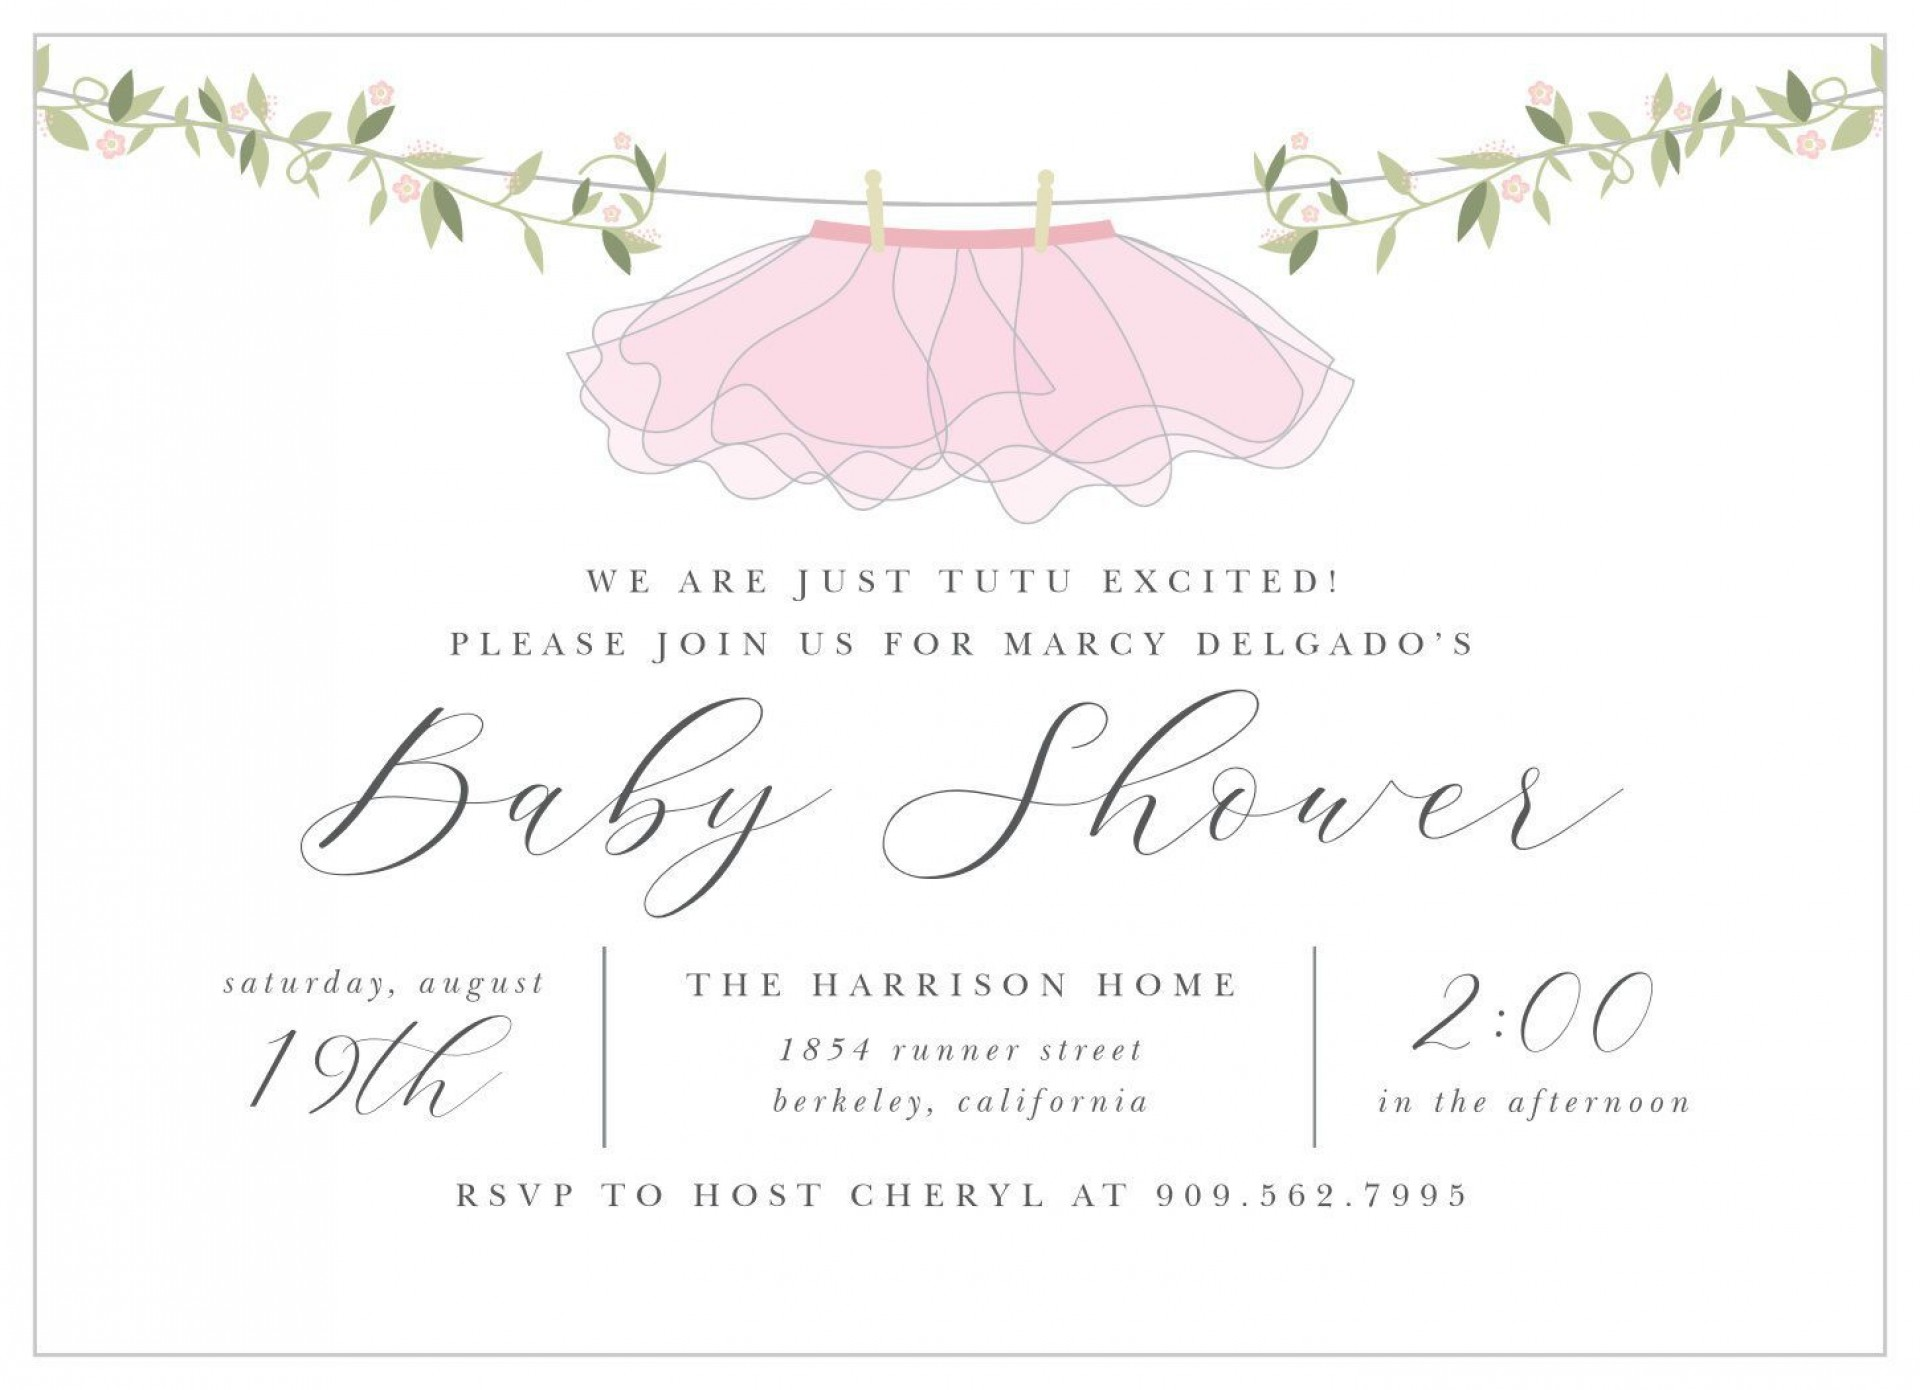 009 Formidable Baby Shower Invitation Wording Example  Examples Invite Coed Idea For Boy1920